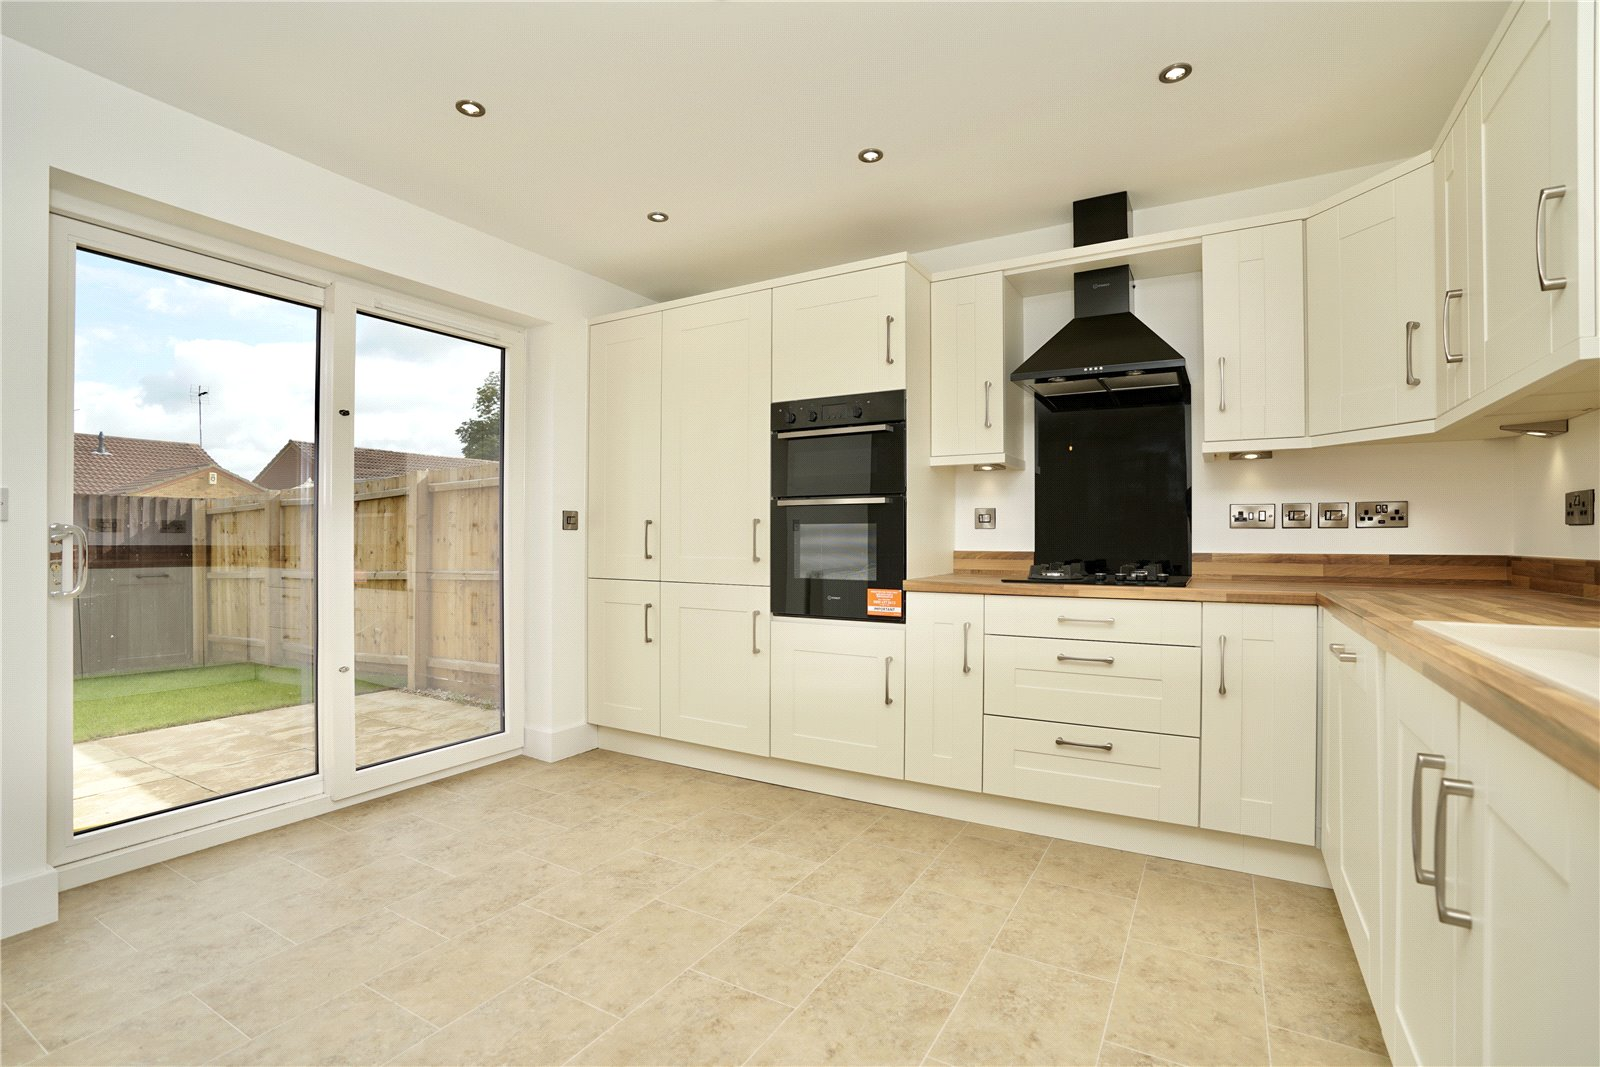 3 bed bungalow for sale in Whittlesey, PE7 1RU 4